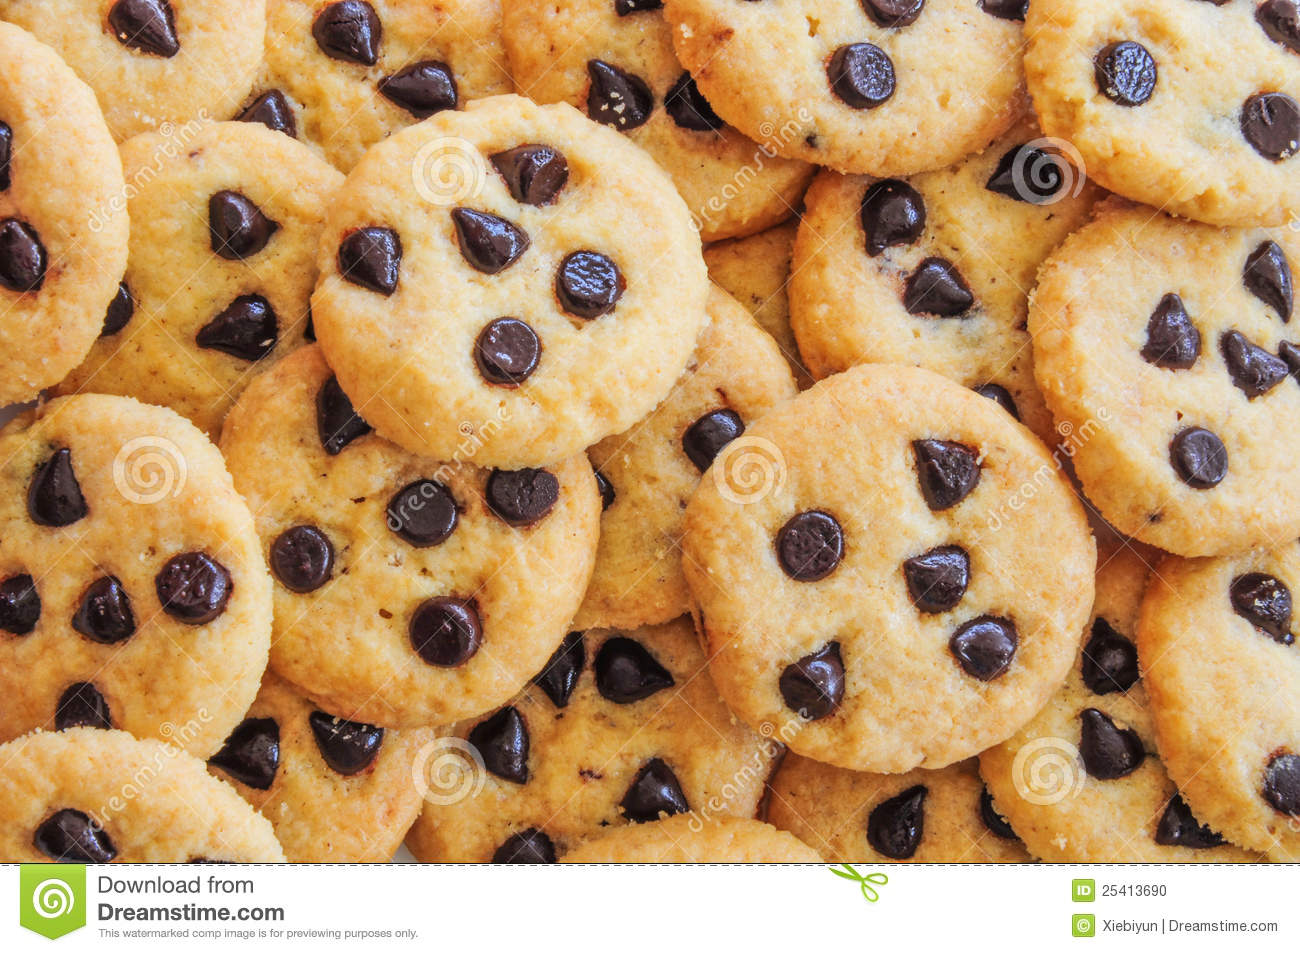 chocolate chip cookie wallpaper - photo #30